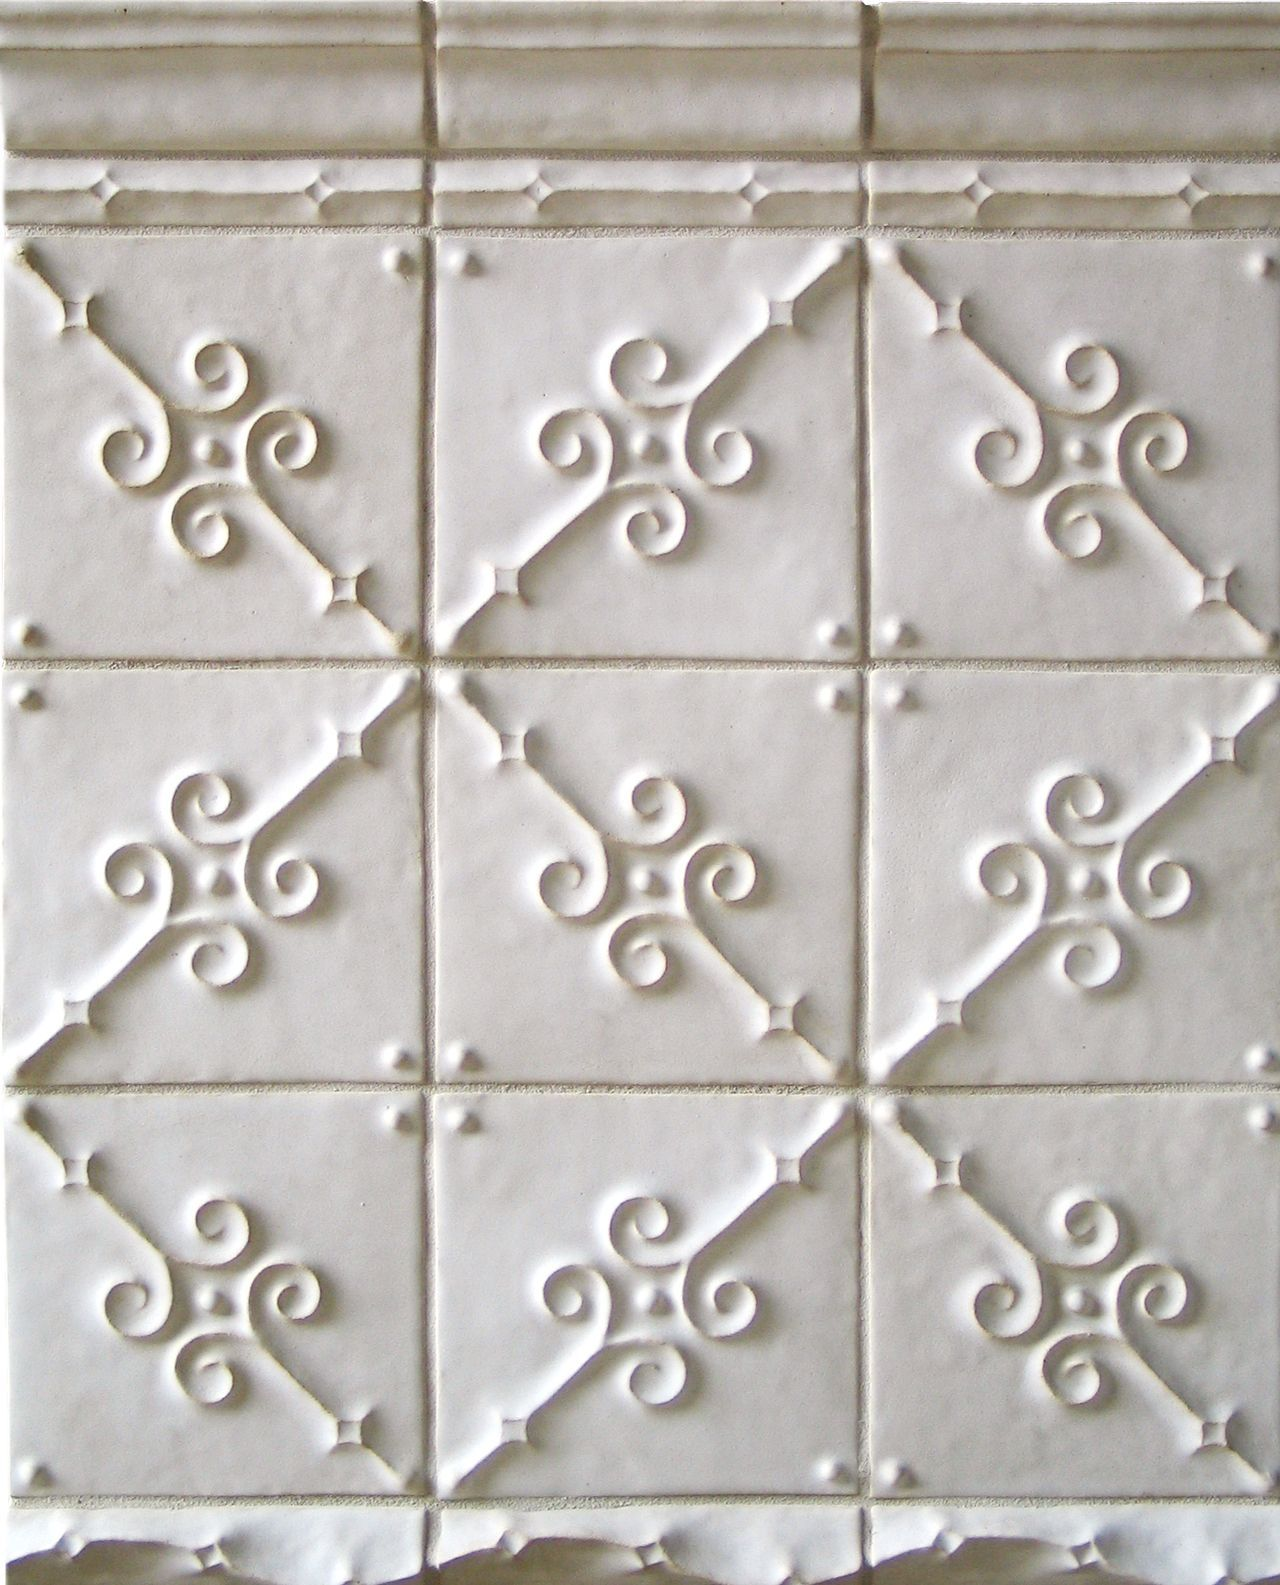 White Ceramic Tile Wall Pattern Design Ideas Diamond French Country Kitchen French Country Farmhouse Country House Decor